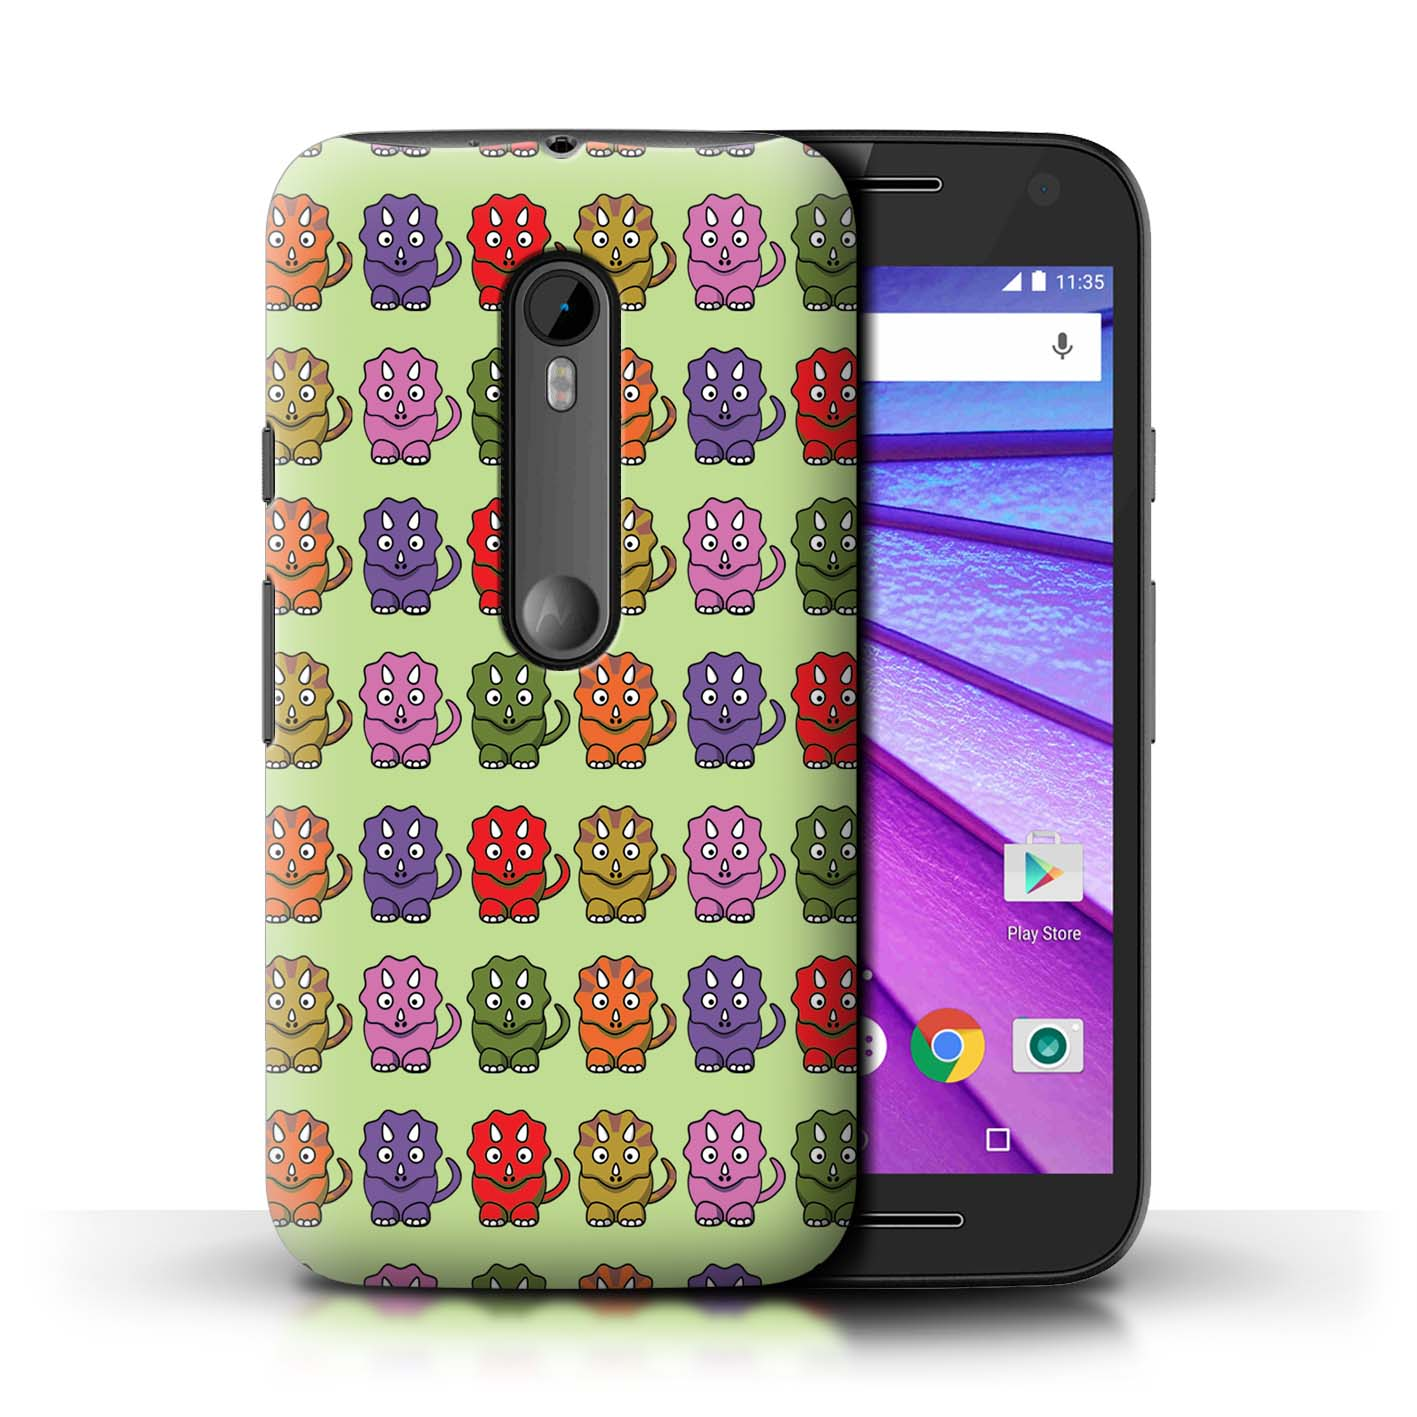 STUFF4-Back-Case-Cover-Skin-for-Motorola-Moto-G-Turbo-Edition-Cartoon-Dinosaurs